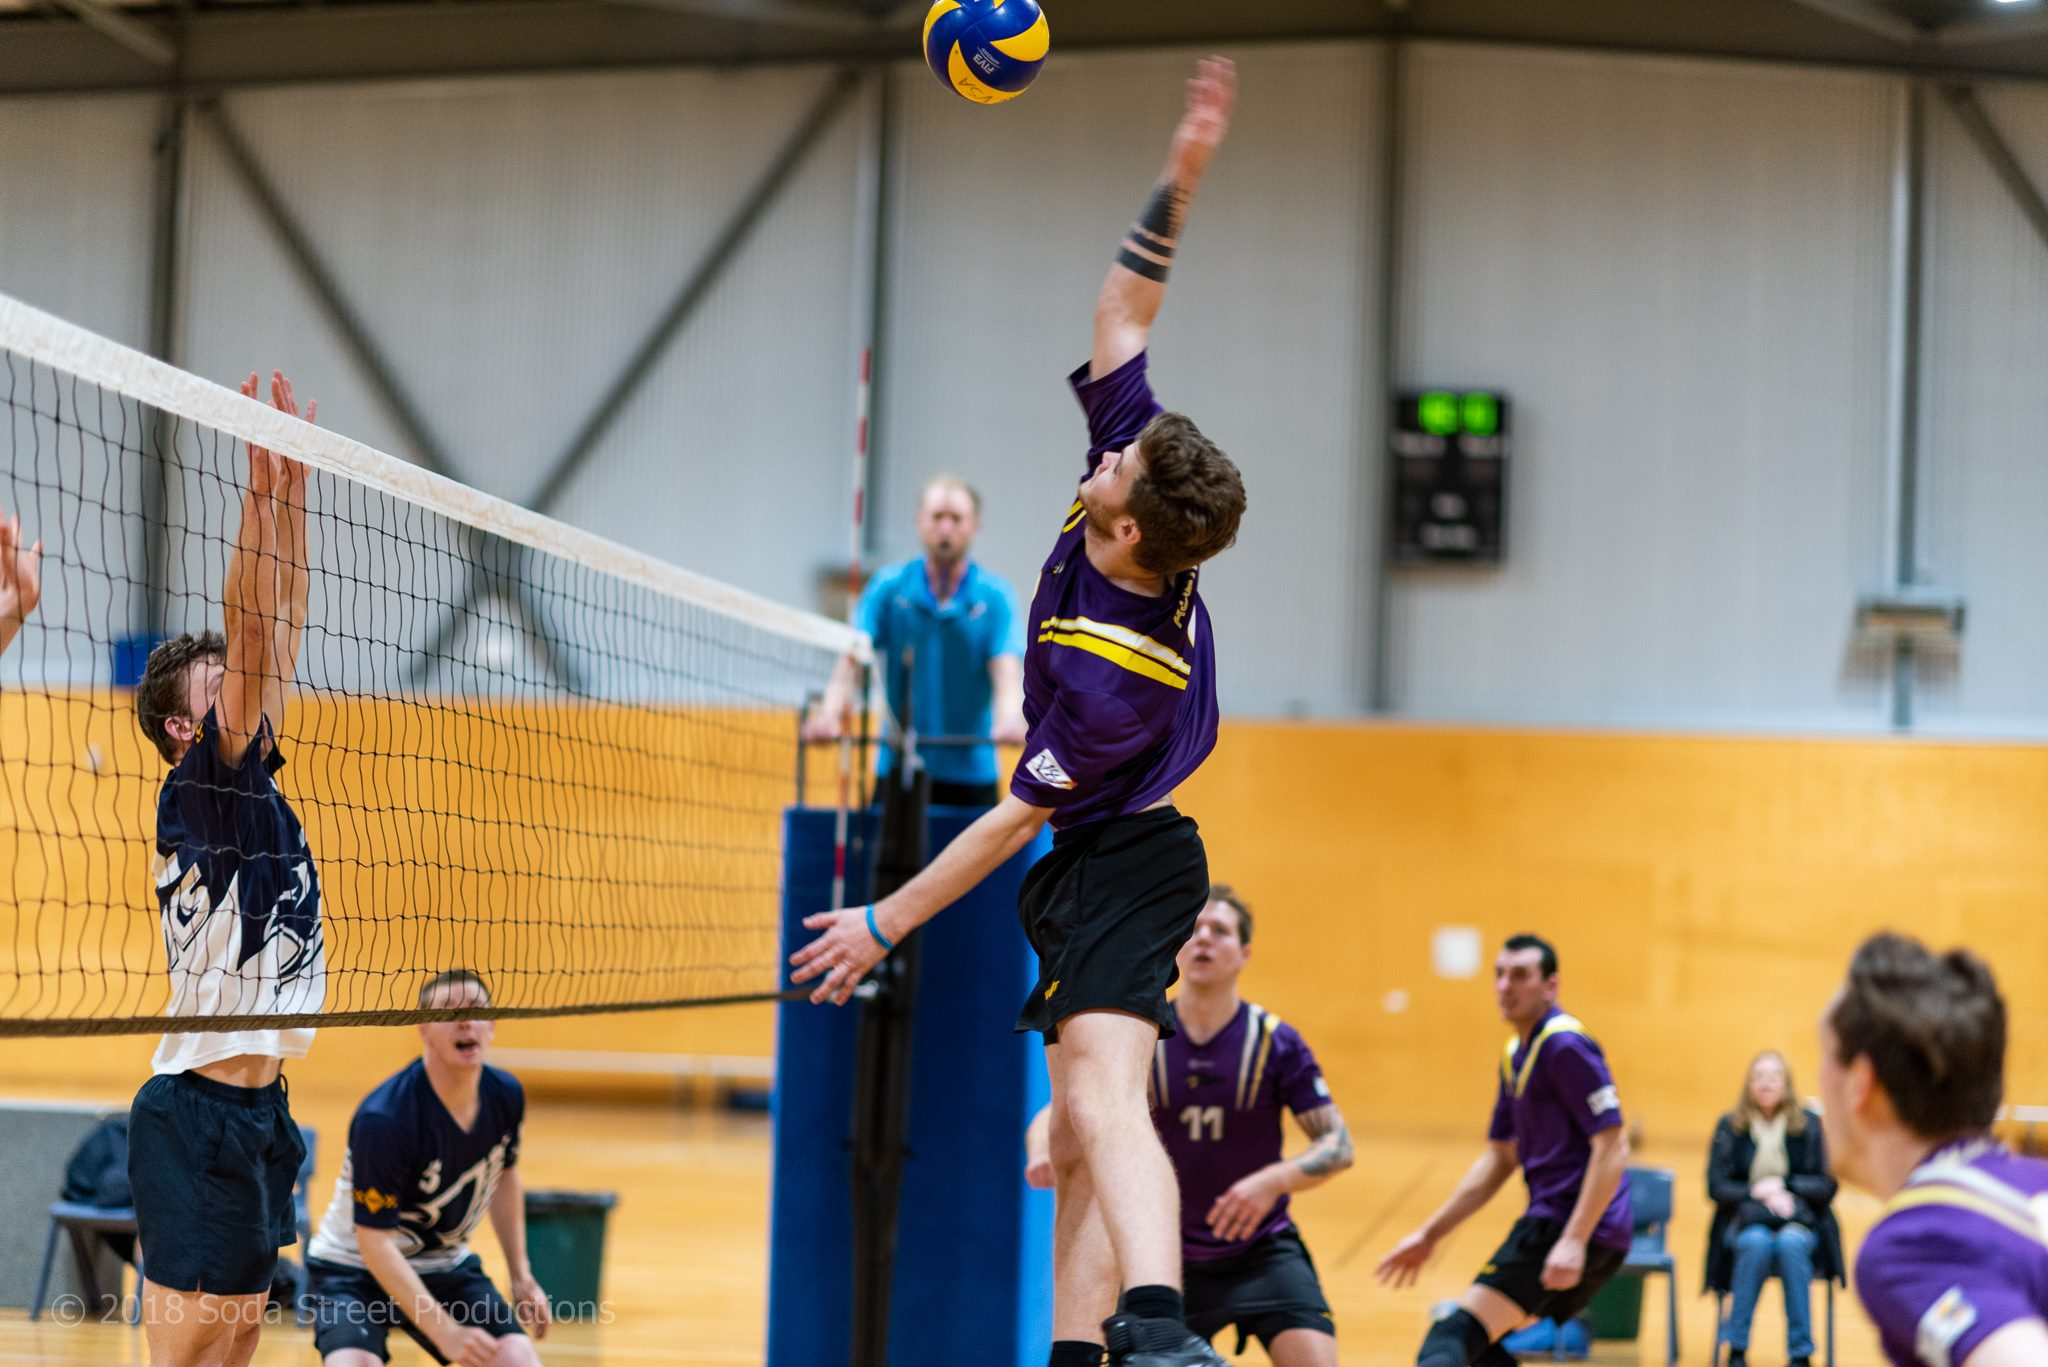 Austral Phoenix Volleyball Club For All Ages And Abilities